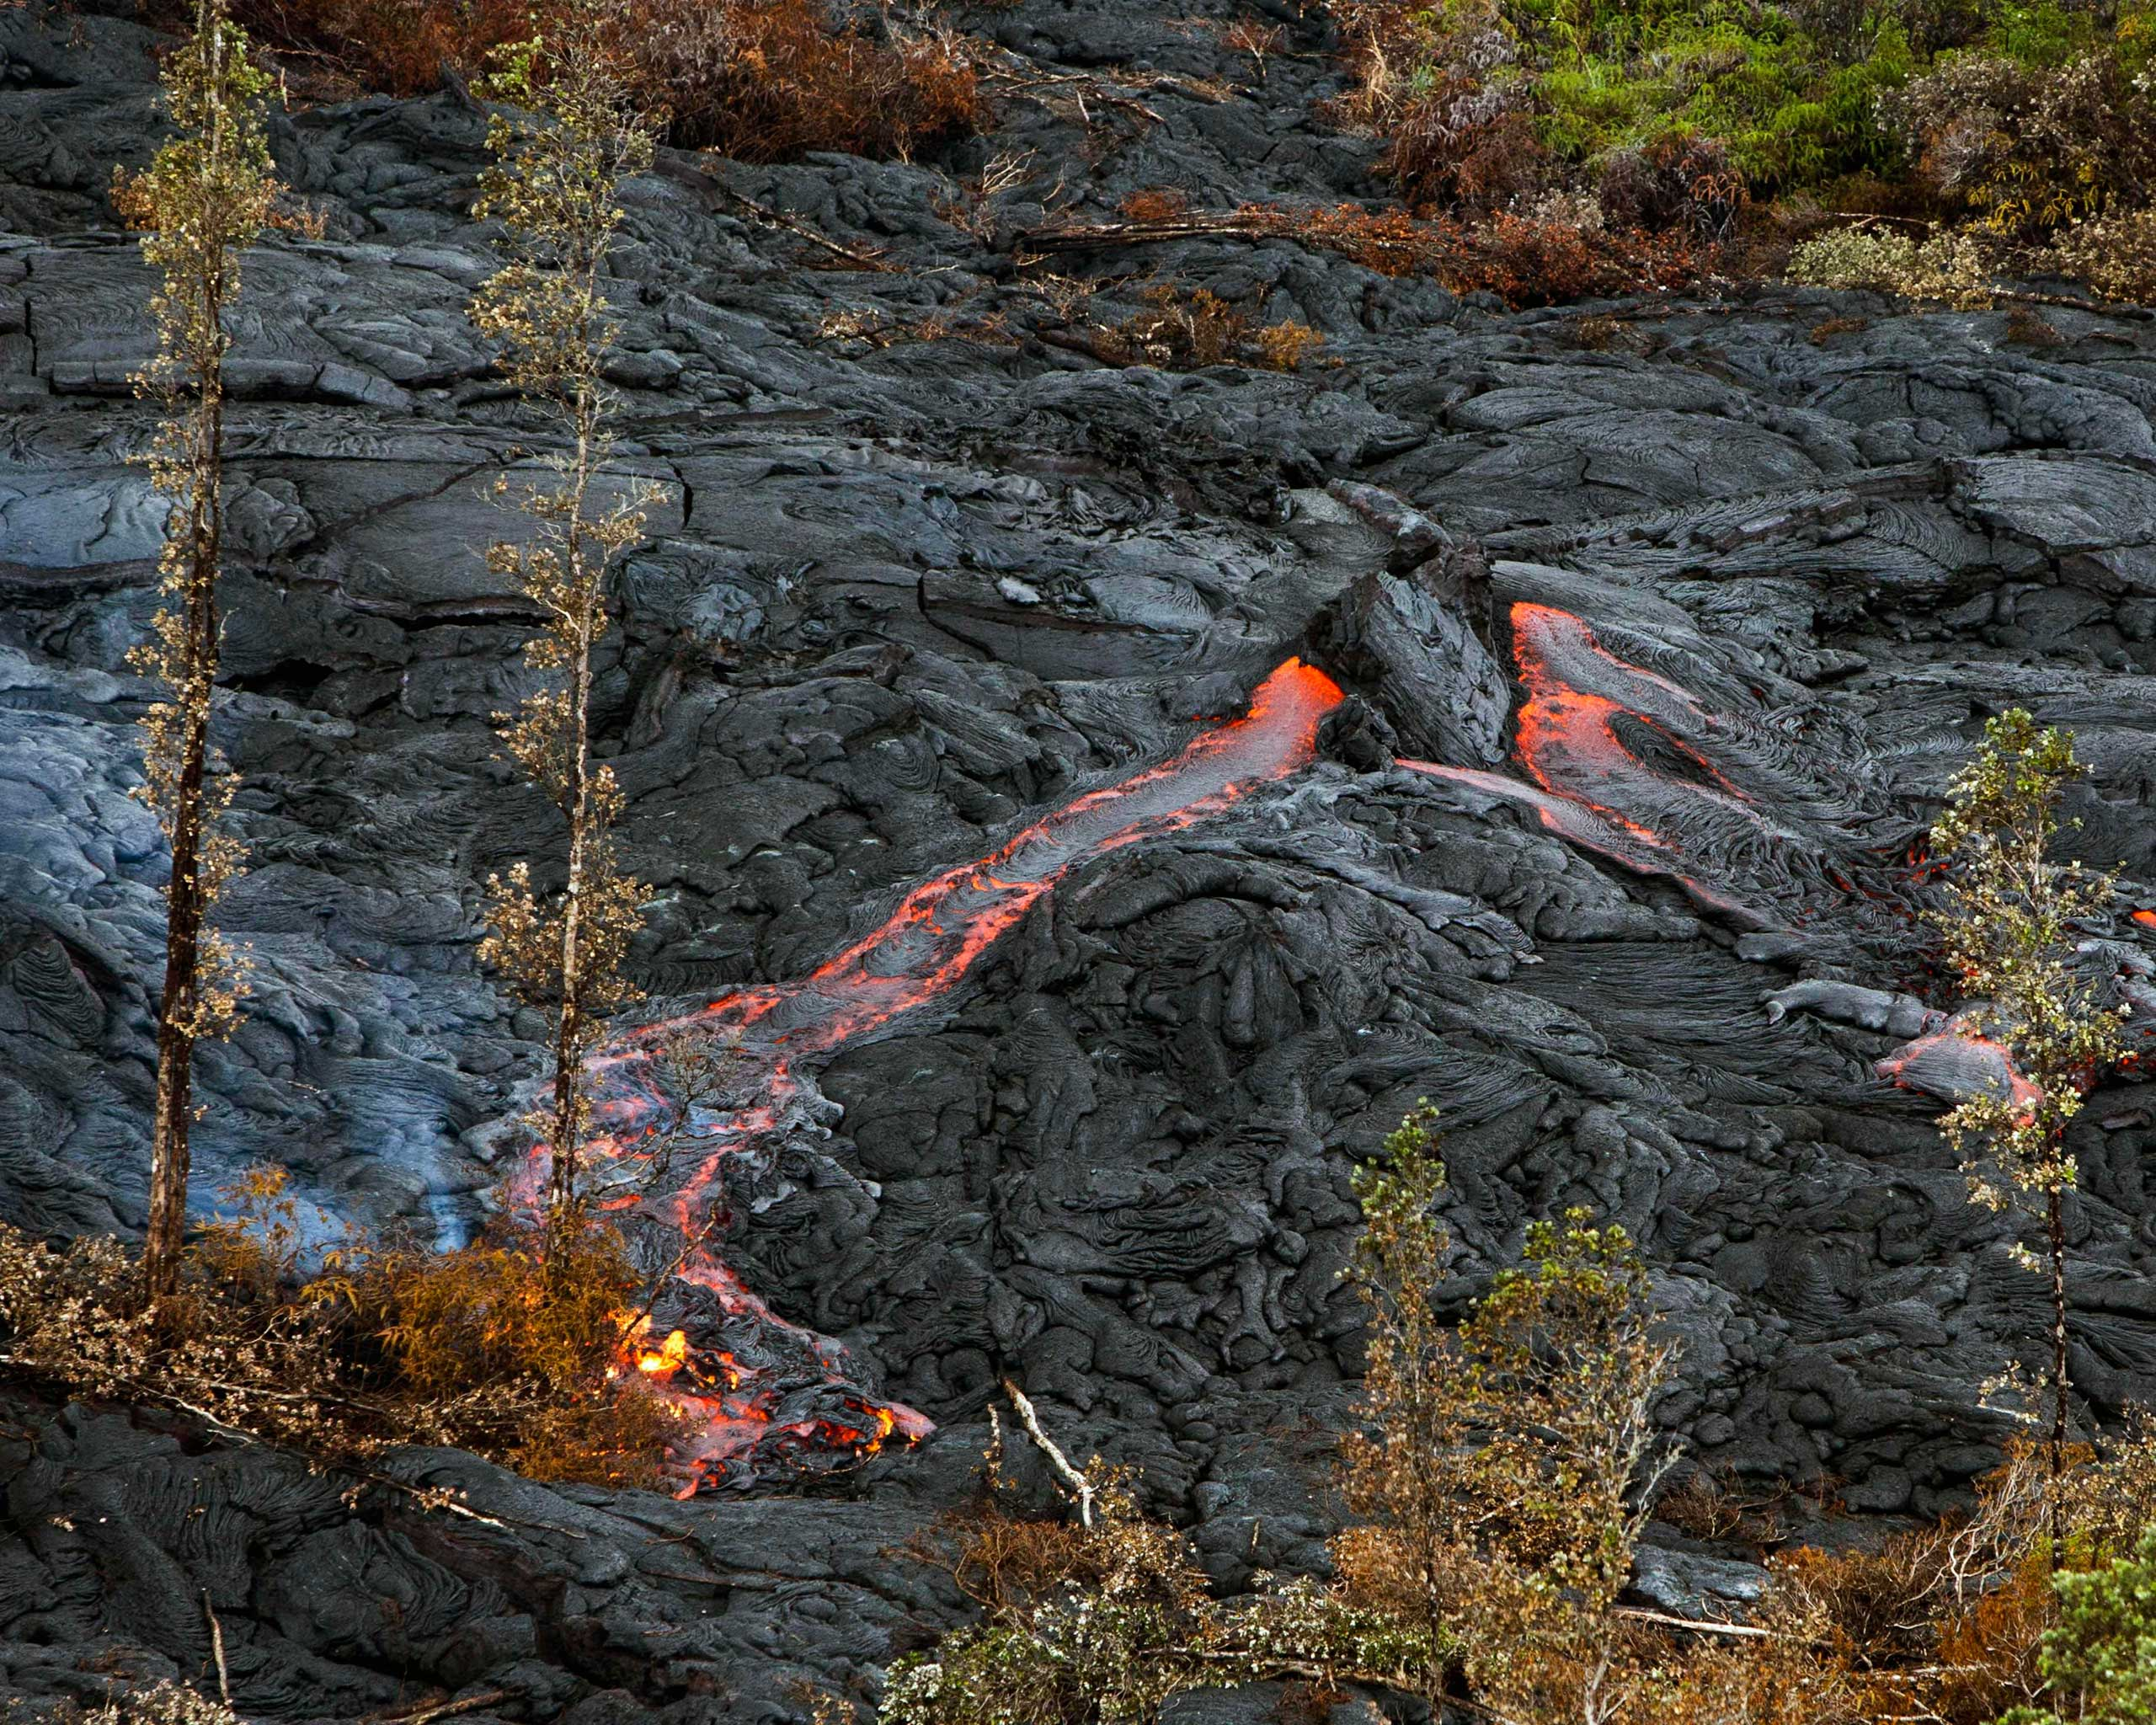 Lava spouts from a hot spot as the lava flow from Kilauea Volcano inches closer to the village of Pahoa, Hawaii on Oct. 29, 2014.